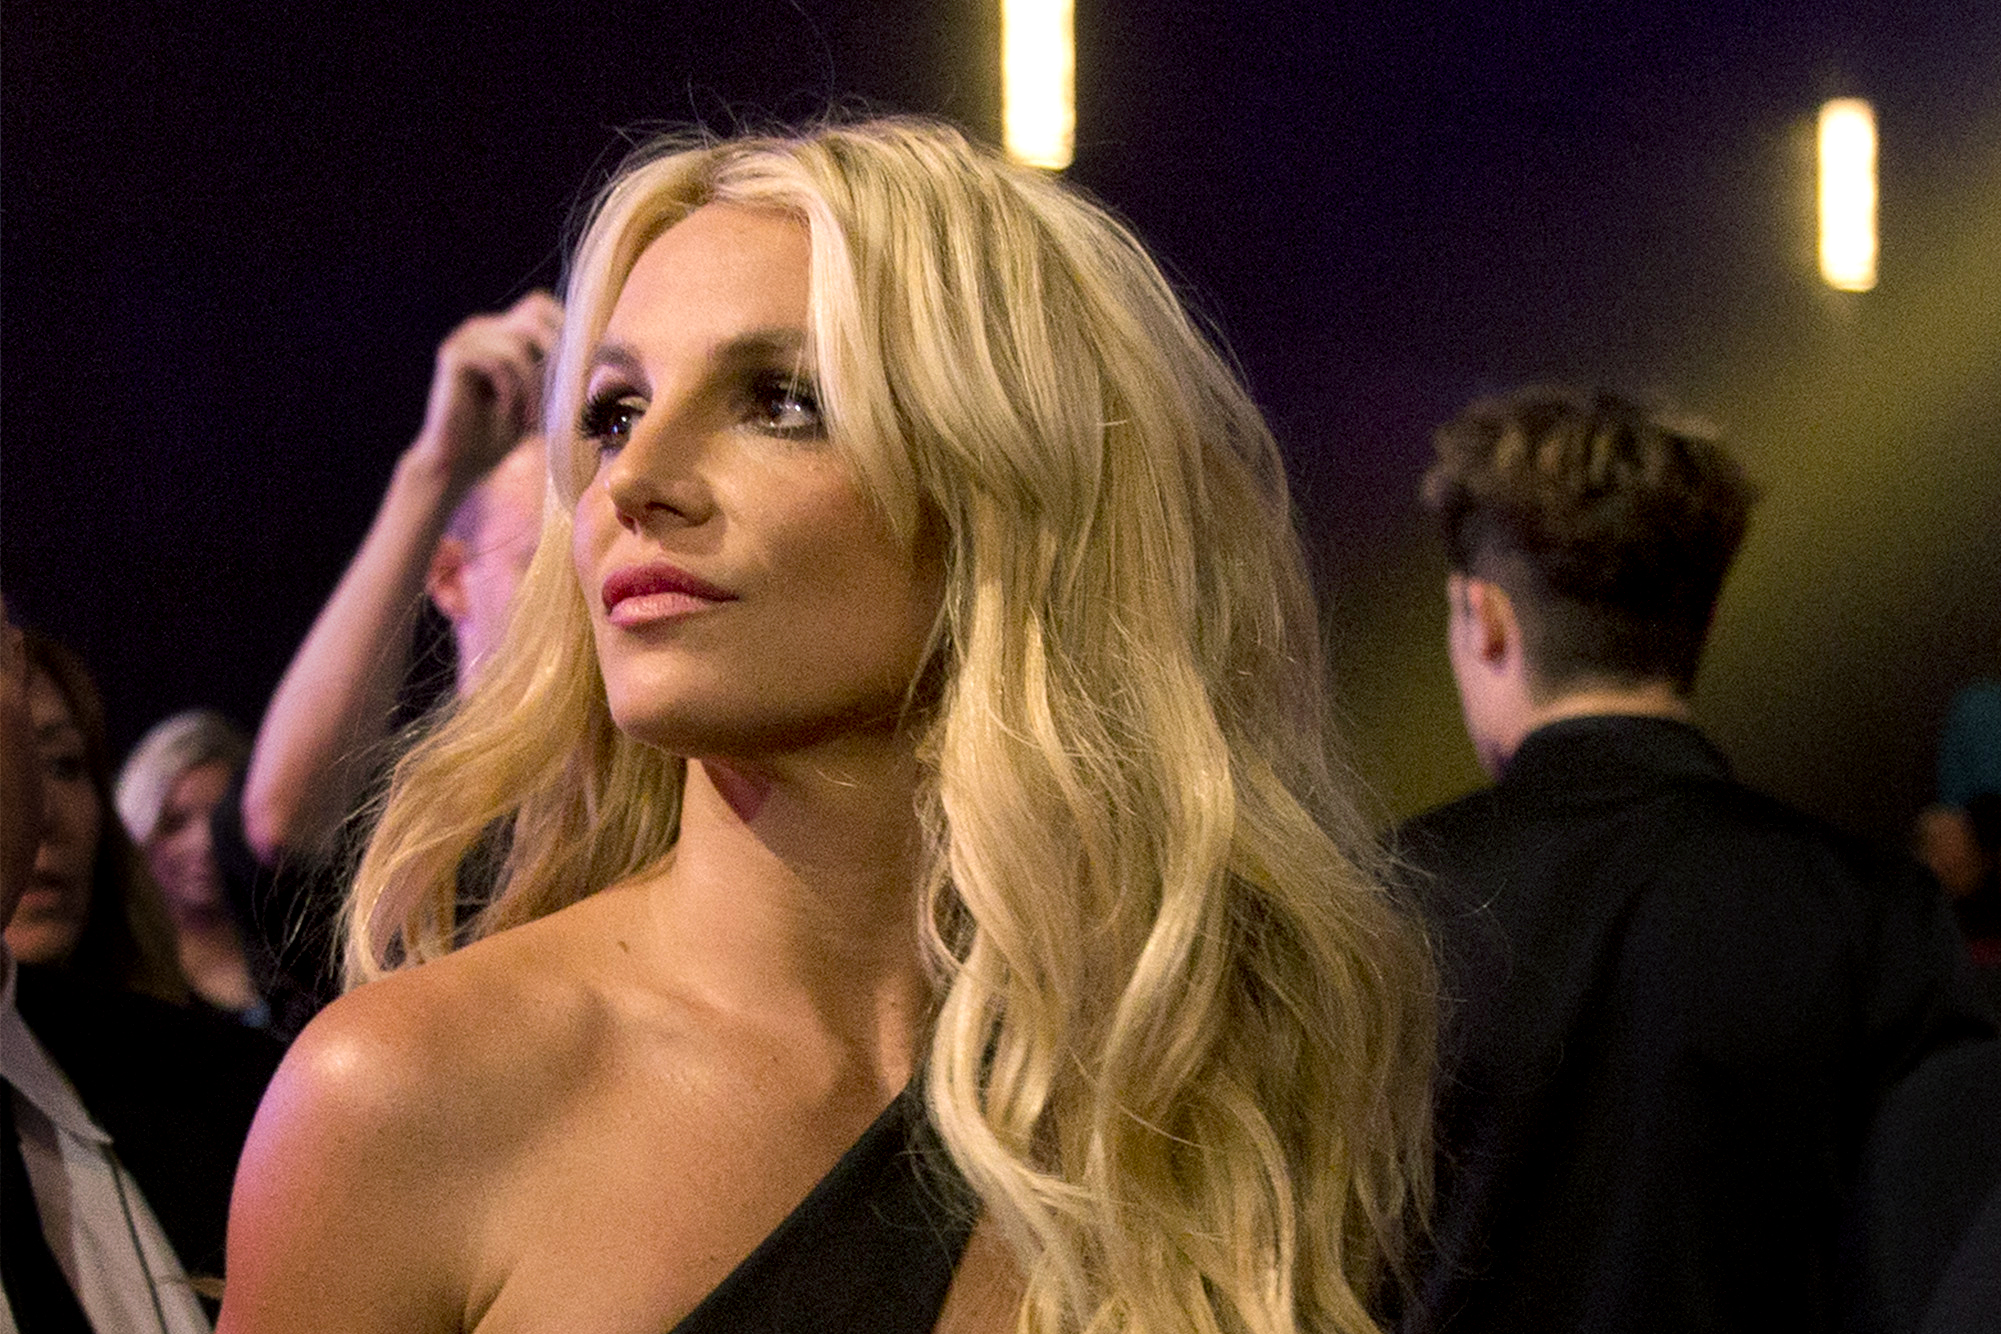 Britney Spears called 911 to report a theft but did not pursue action